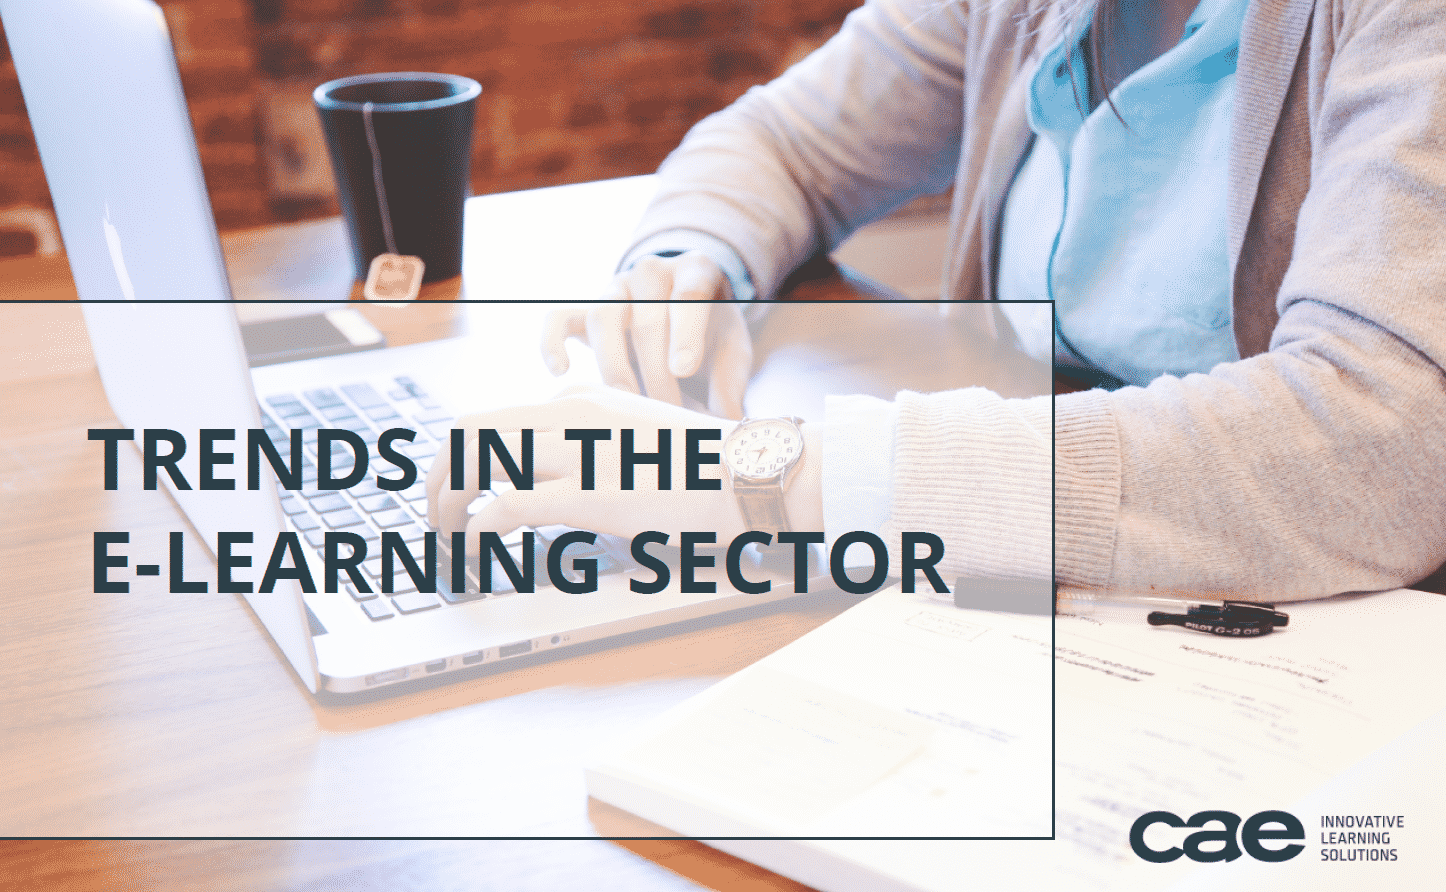 E-book on trends in the e-learning sector